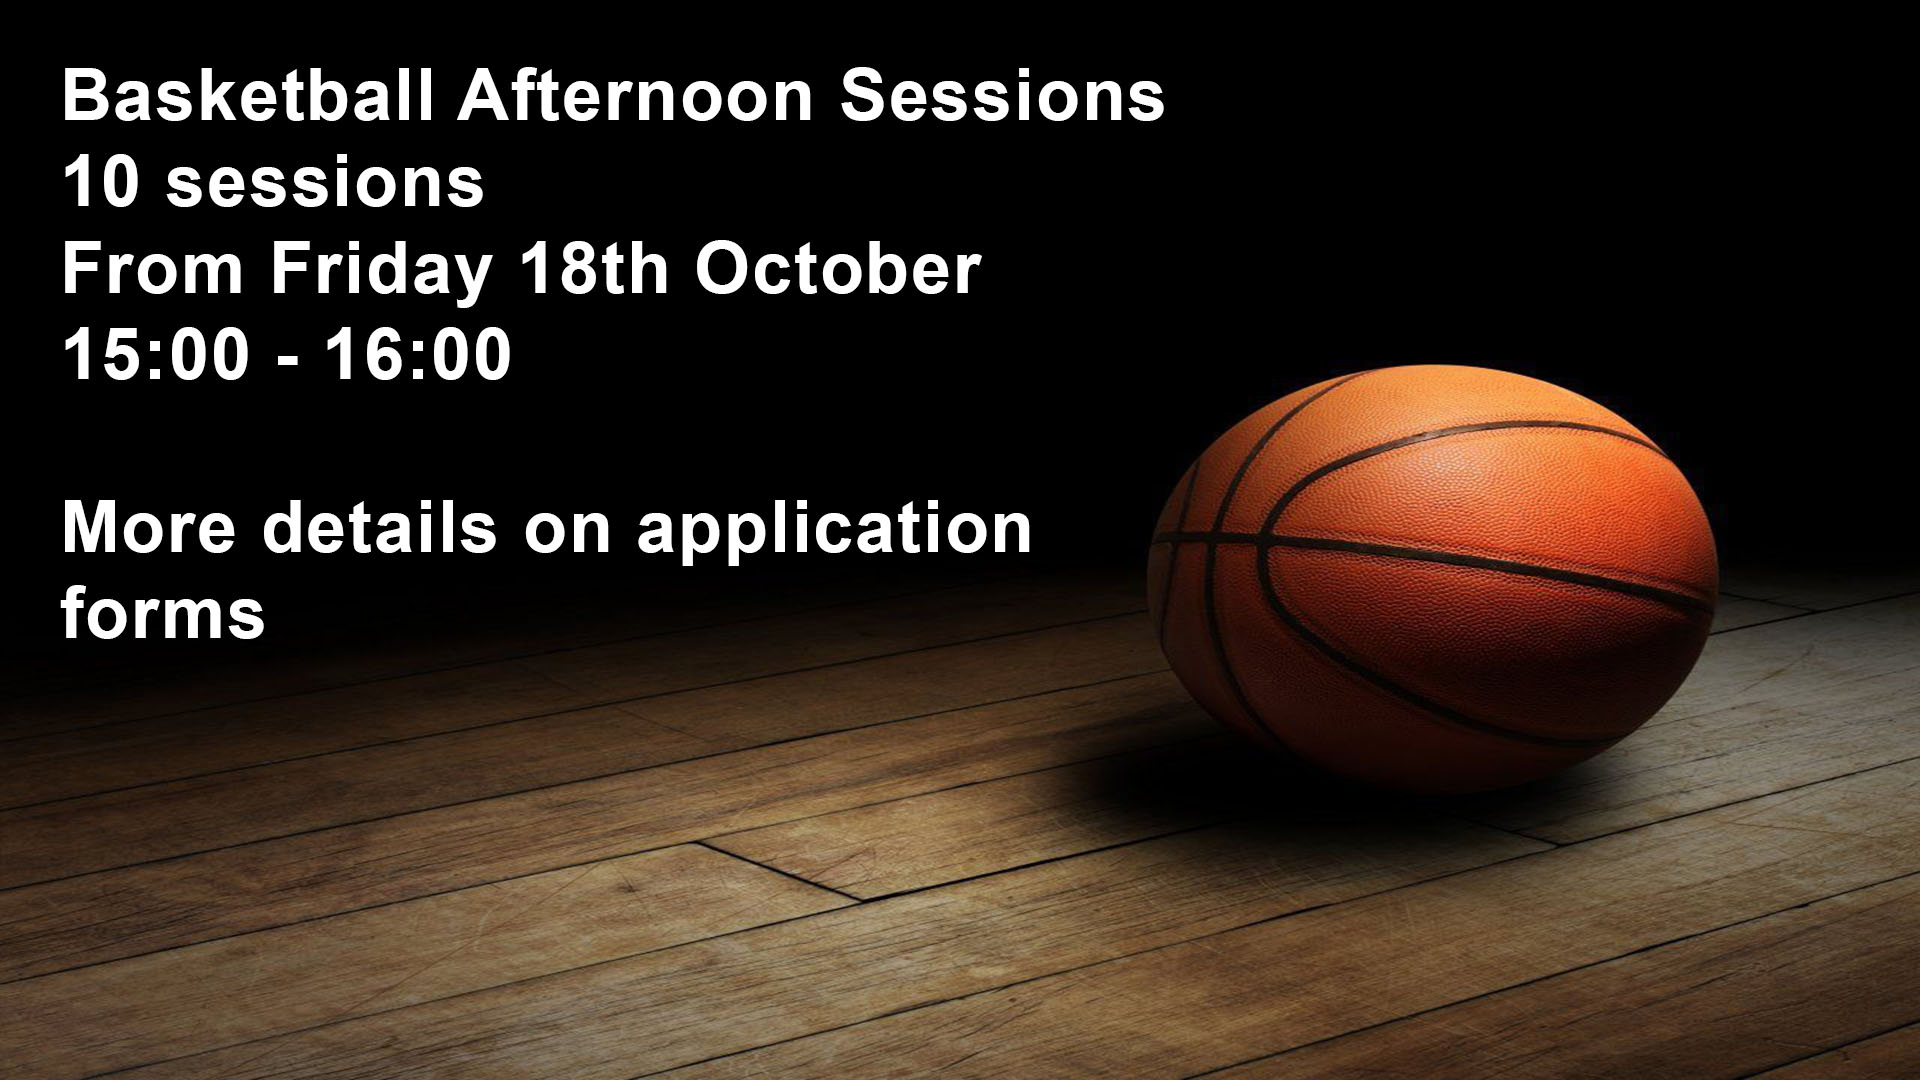 Basketball Afternoon Sessions